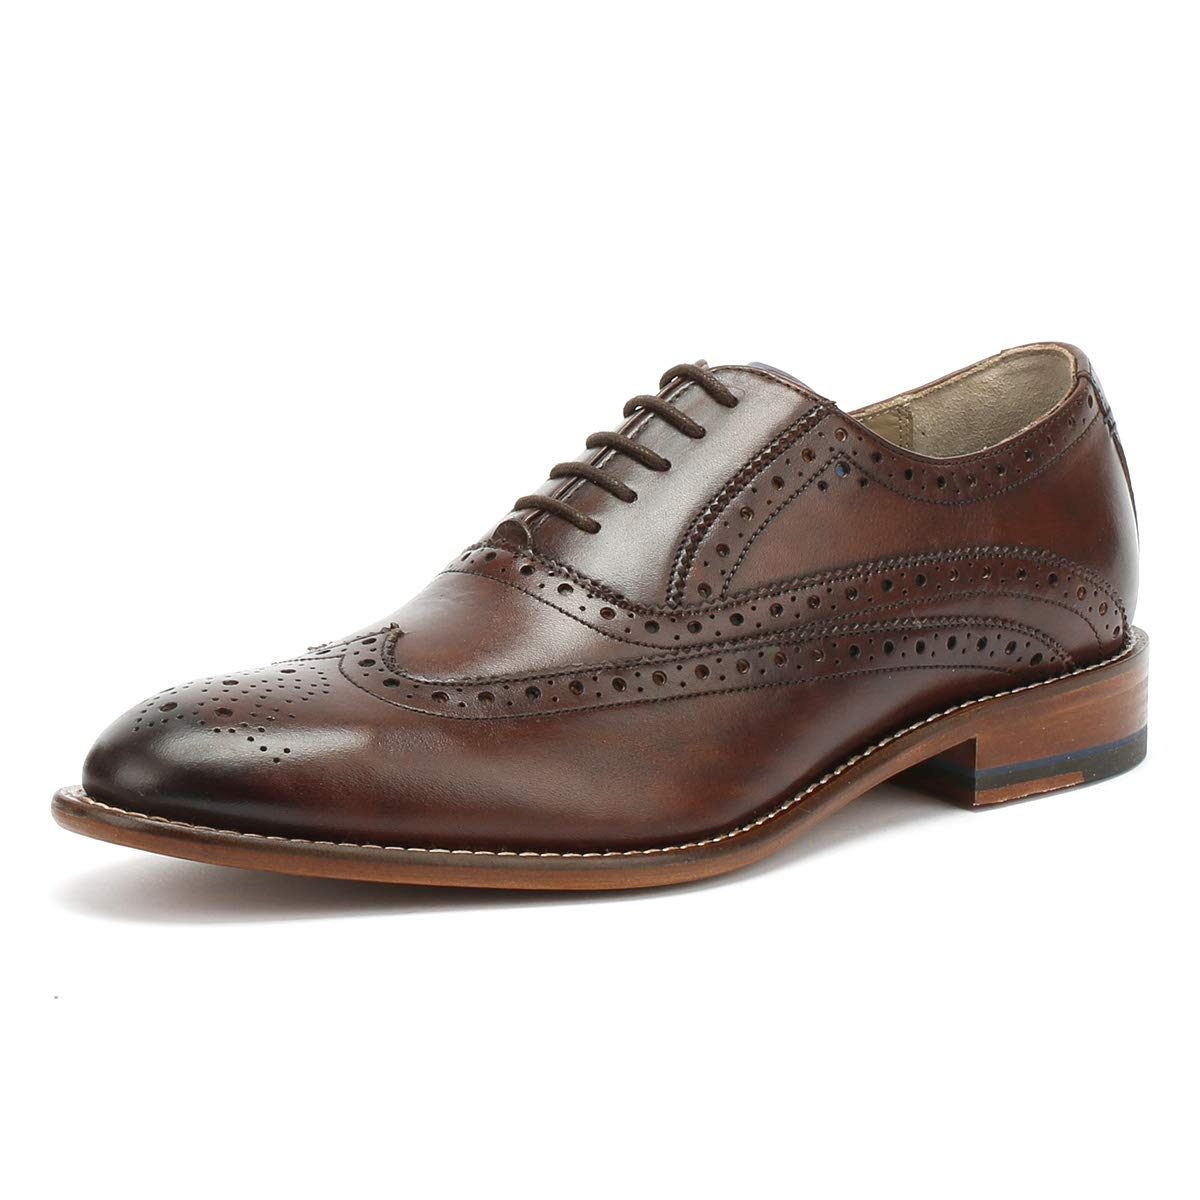 Oliver Sweeney Fellbeck Chestnut marrón hombres zapatos-UK 8